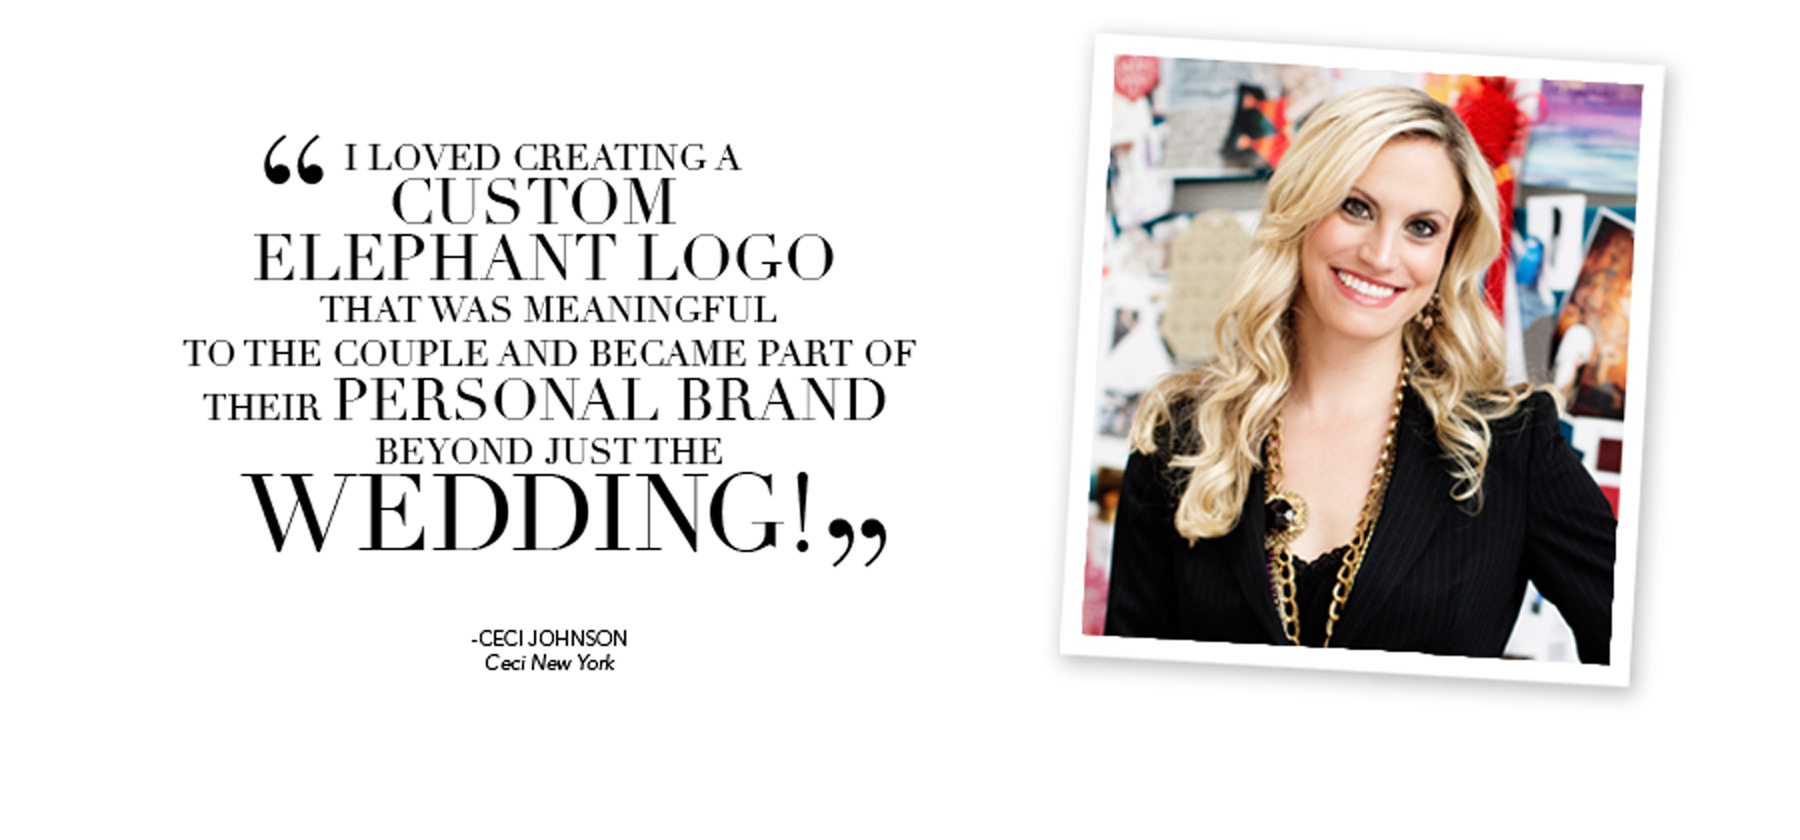 I loved creating a custom elephant logo that was meaningful to the couple and became part of their personal brand beyond just the wedding! - Ceci Johnson, Ceci New York